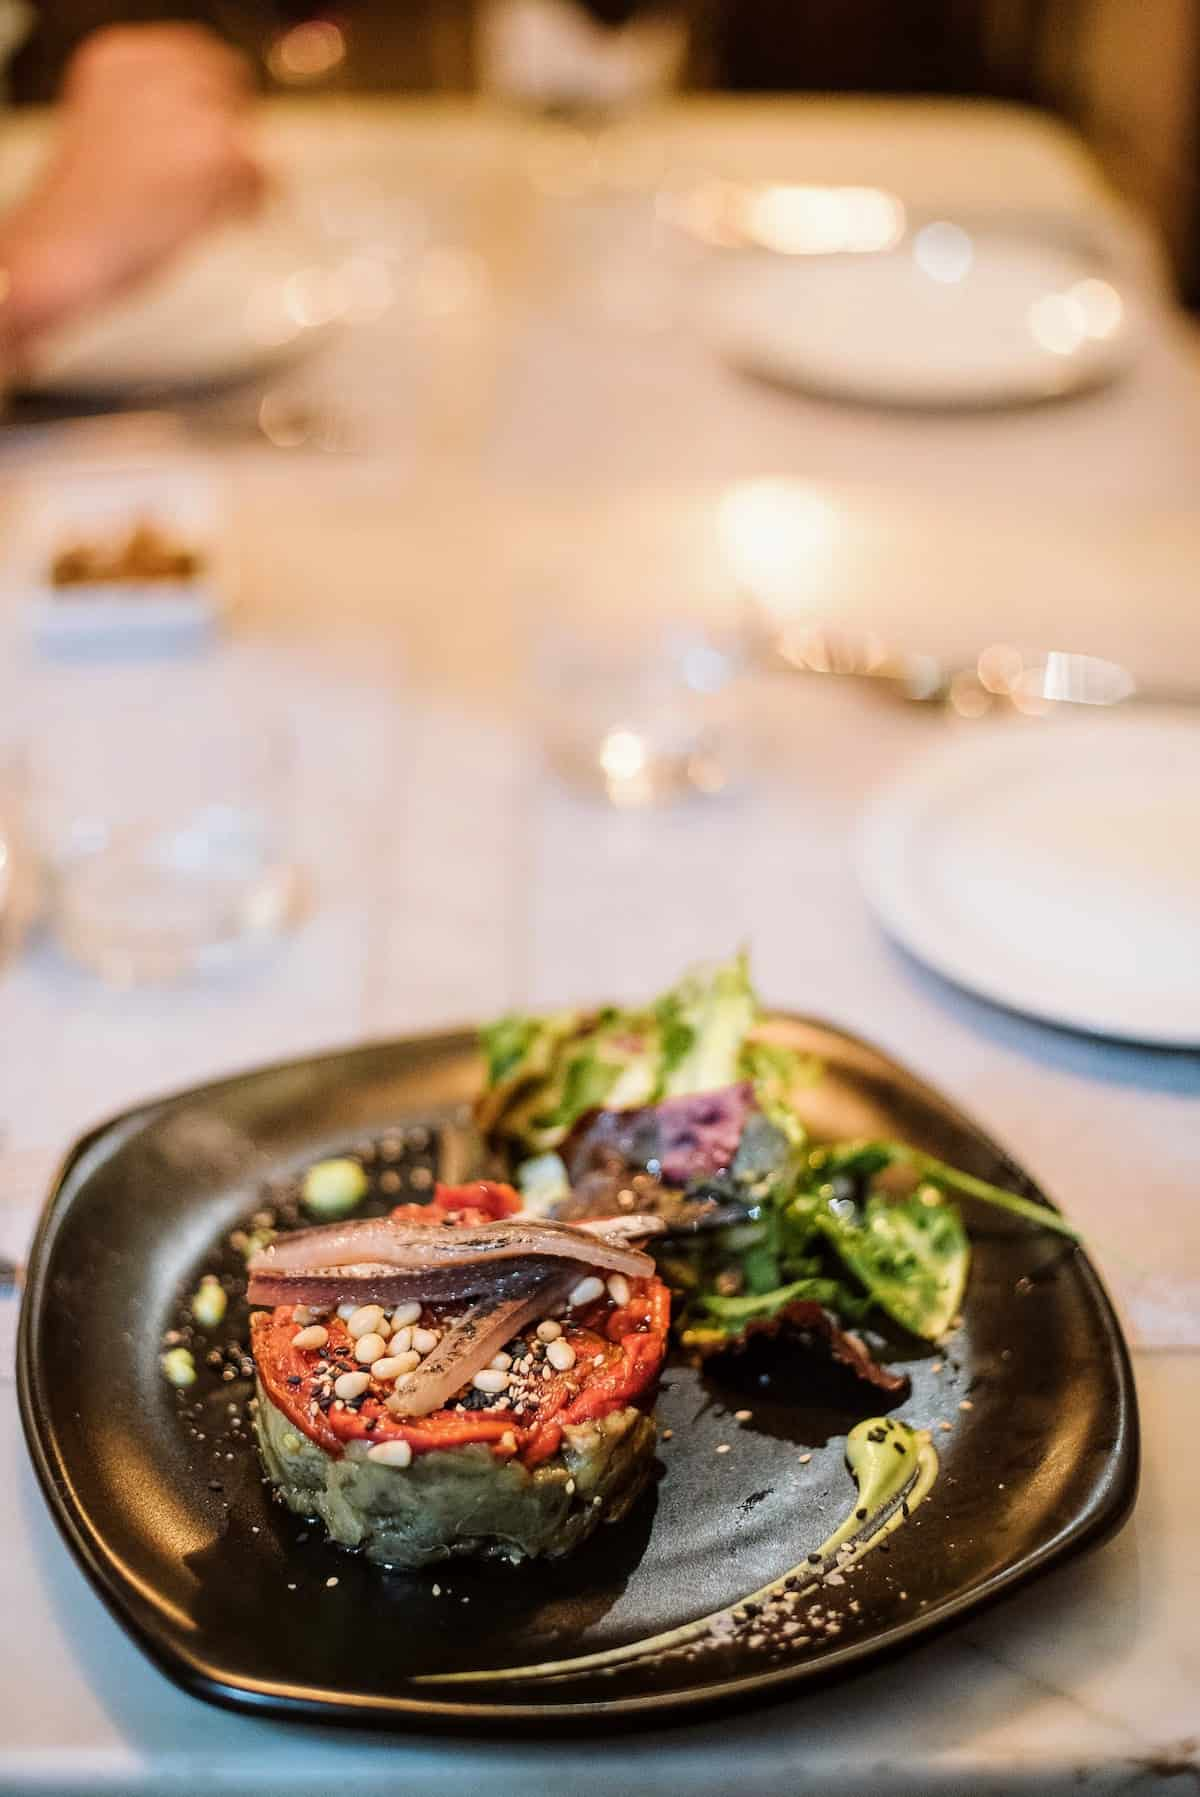 Modern presentation of grilled vegetables and anchovies on a black plate.